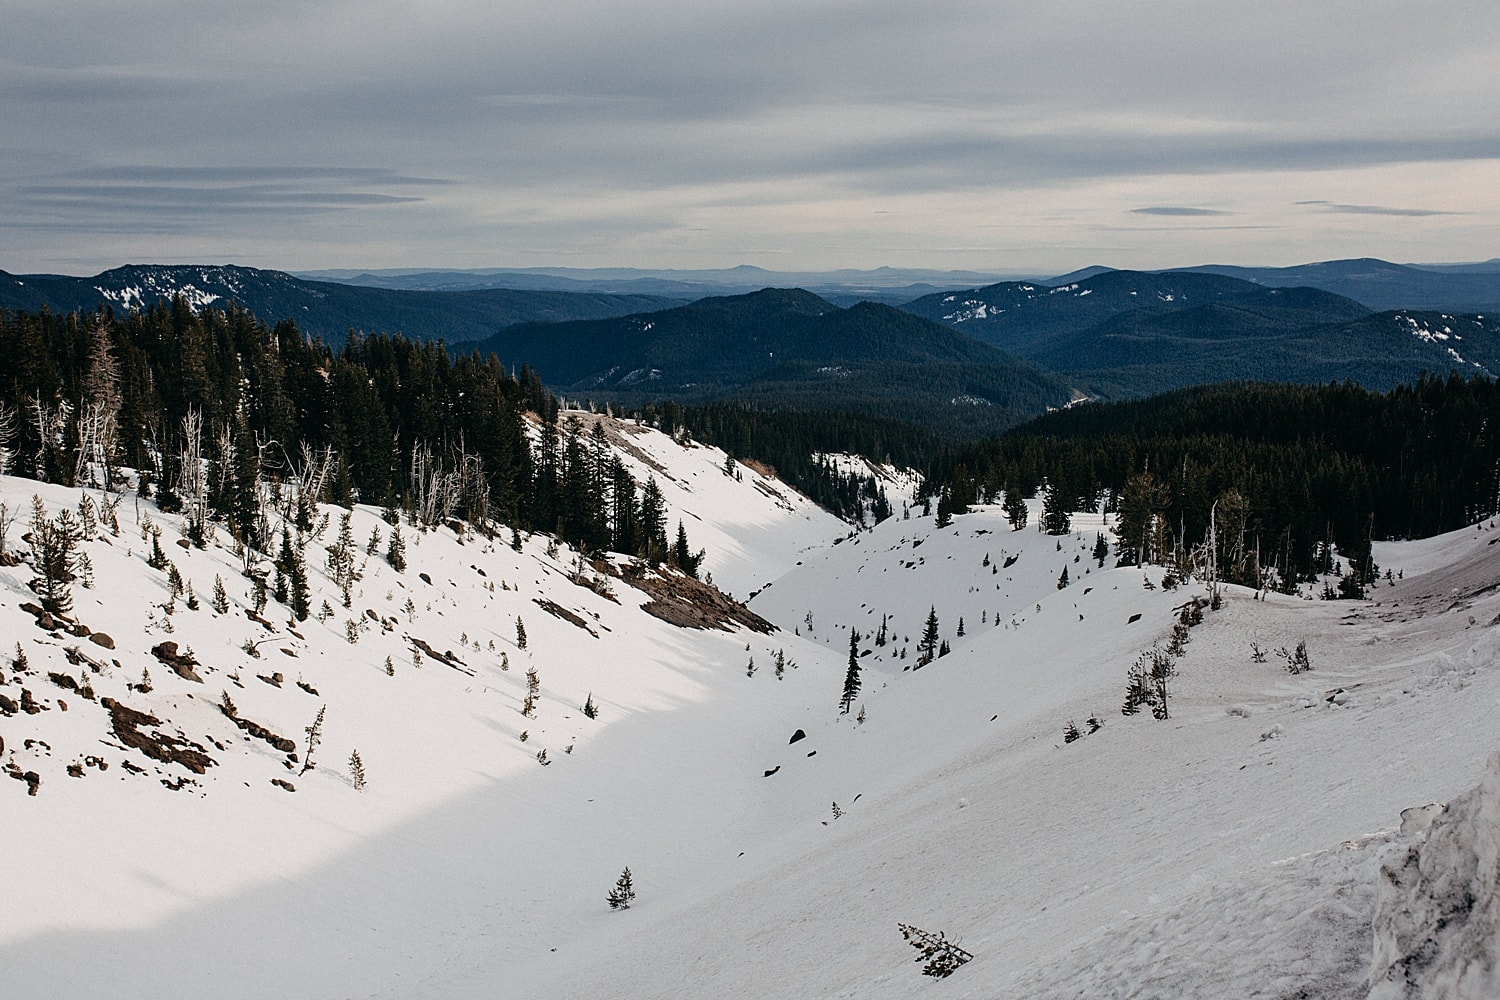 view from mt hood towards snow capped peaks